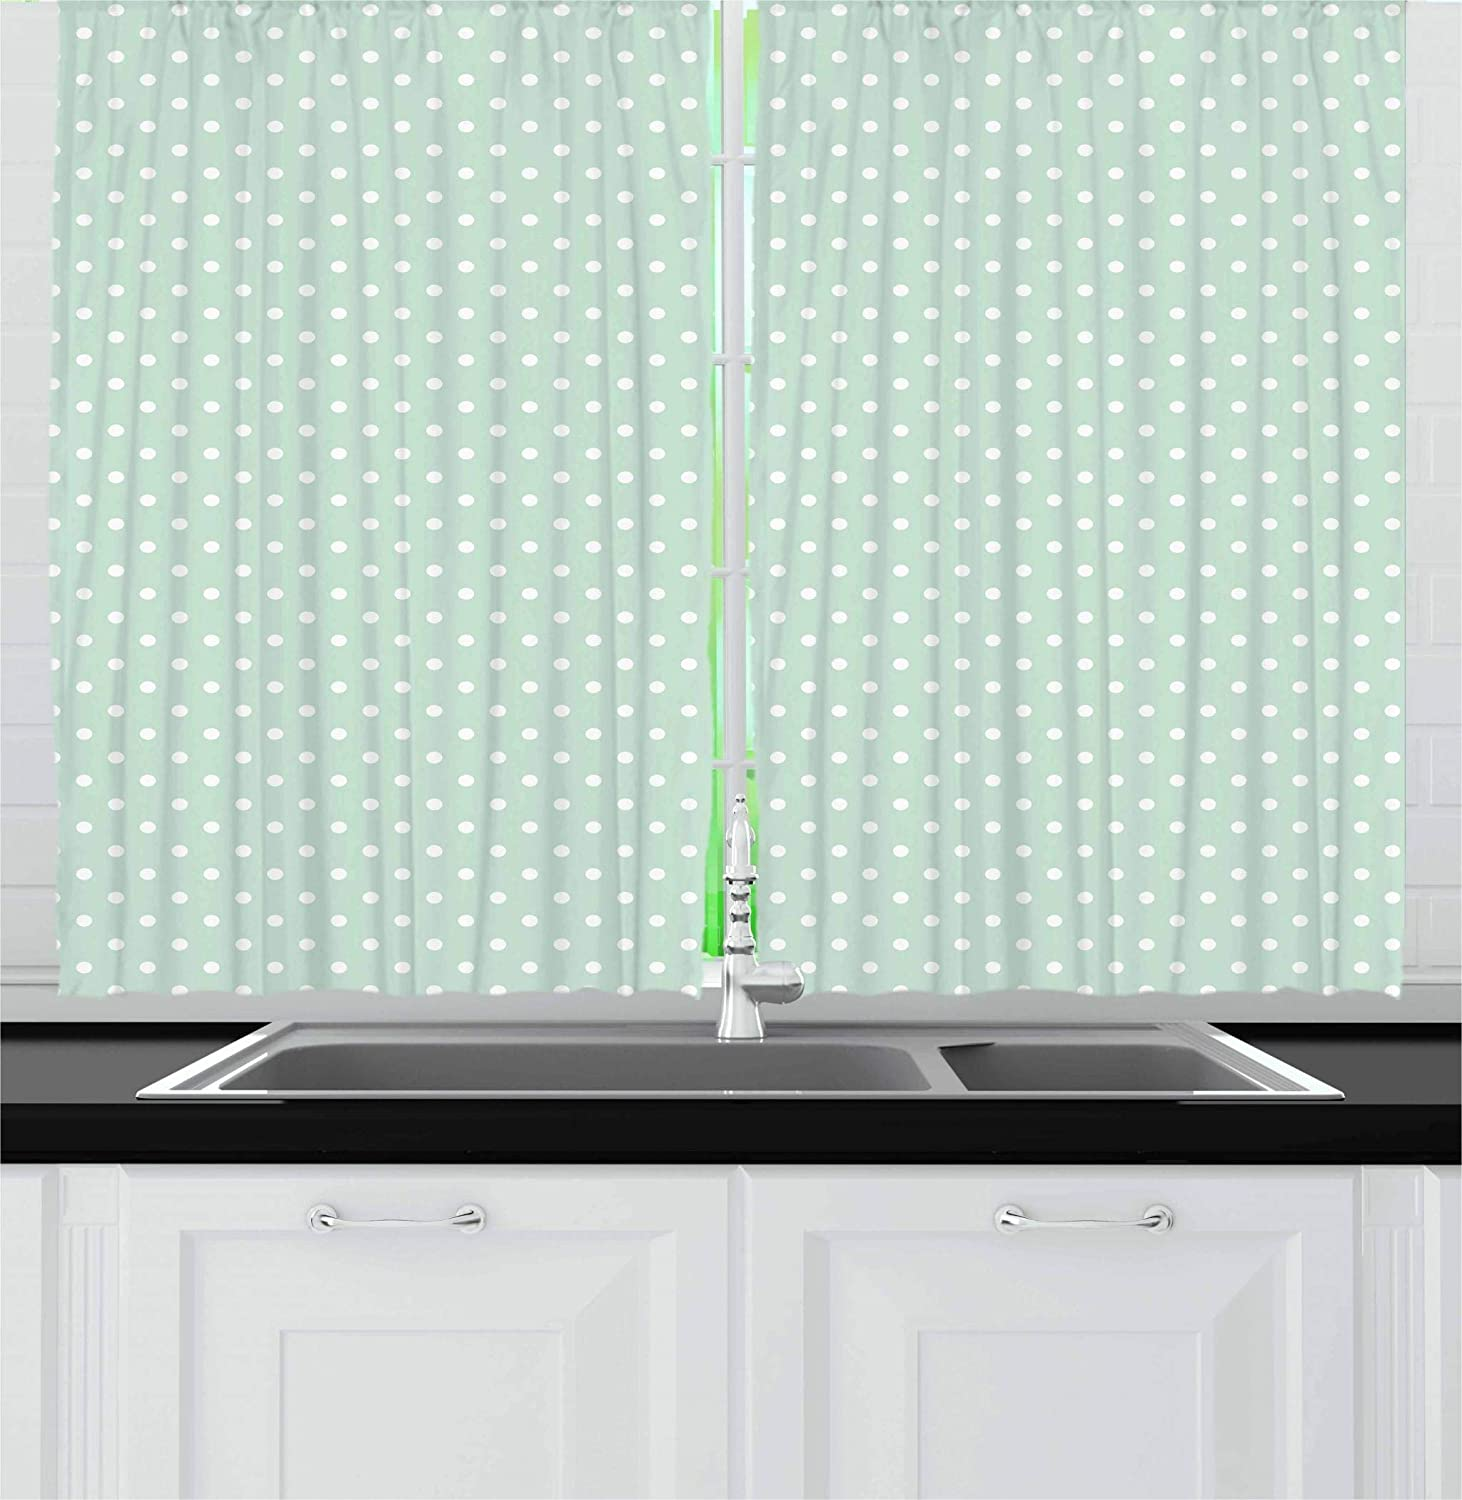 Ambesonne Green Kitchen Curtains, Retro Style Baby Nursery Themed Pattern with Little White Polka Dots Pastel, Window Drapes 2 Panel Set for Kitchen Cafe, 55 W X 39 L Inches, Mint Green White